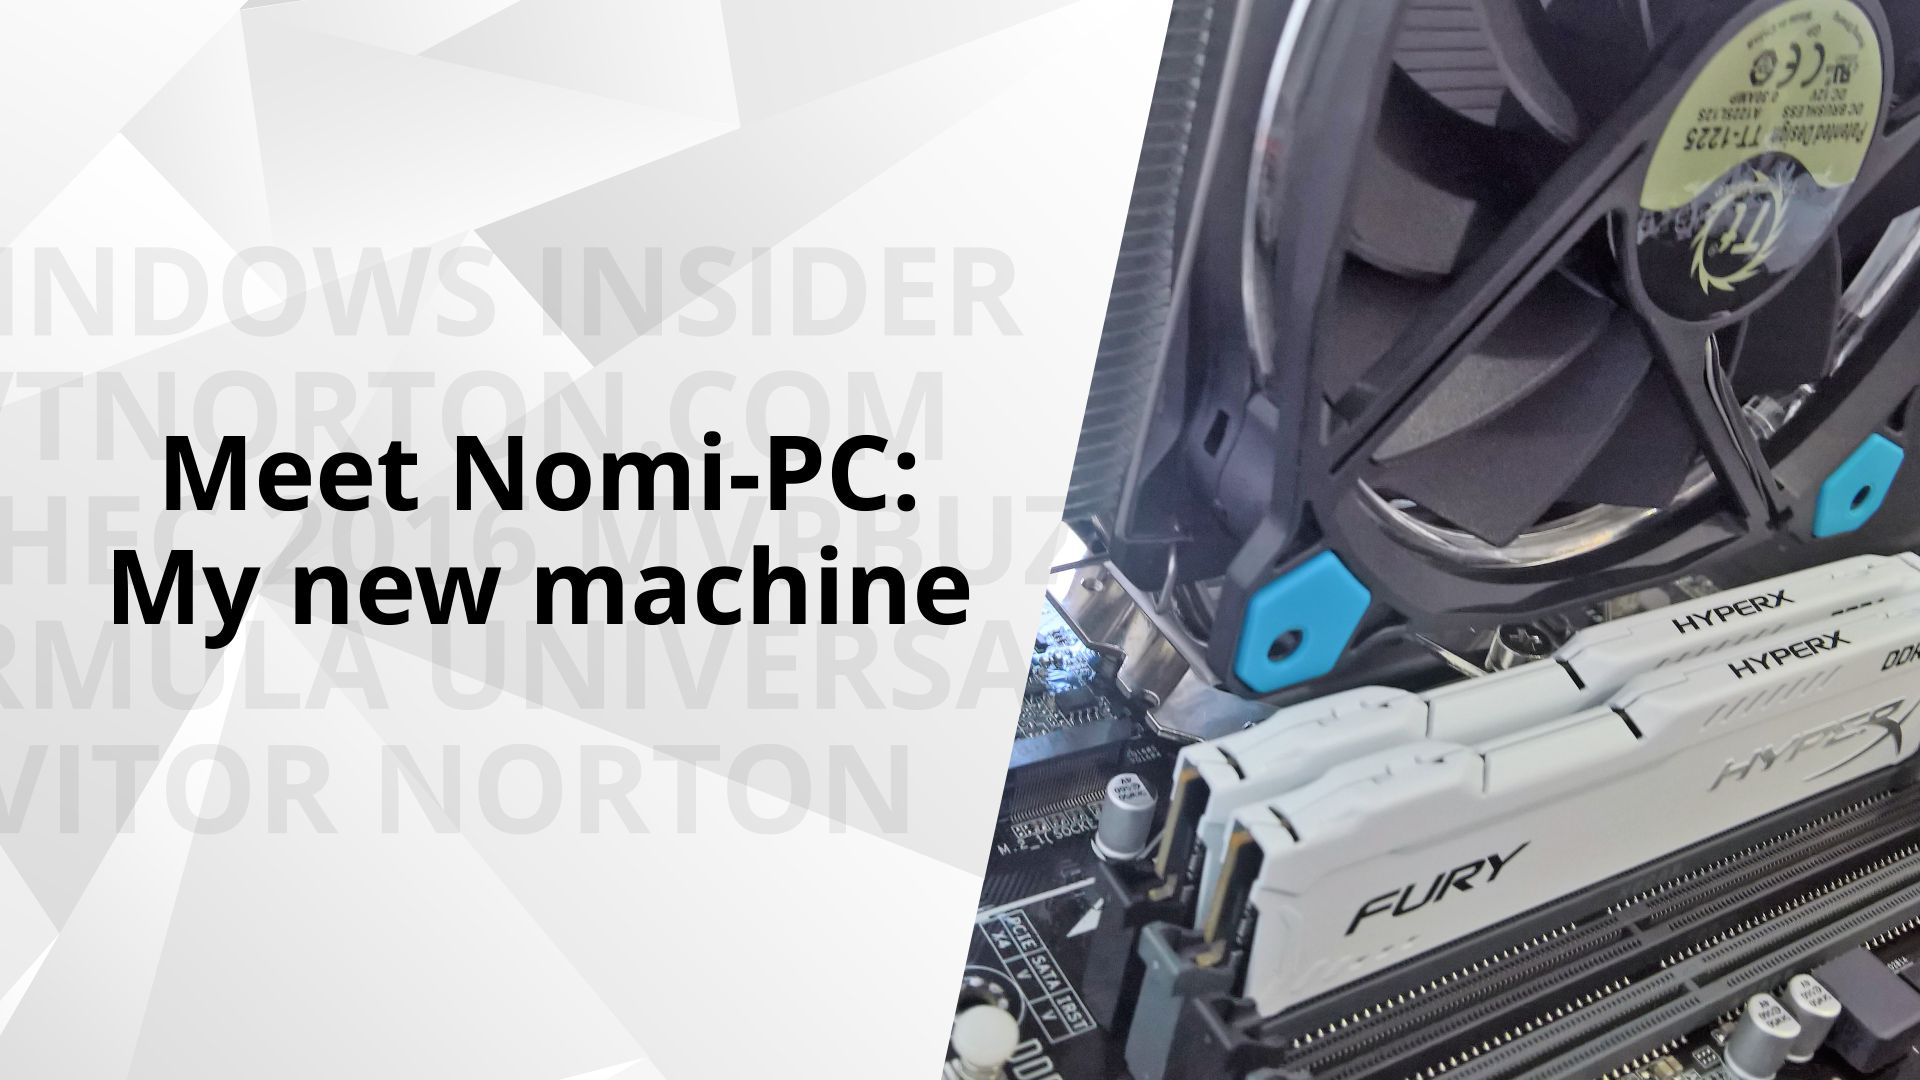 Meet Nomi-PC: My new machine